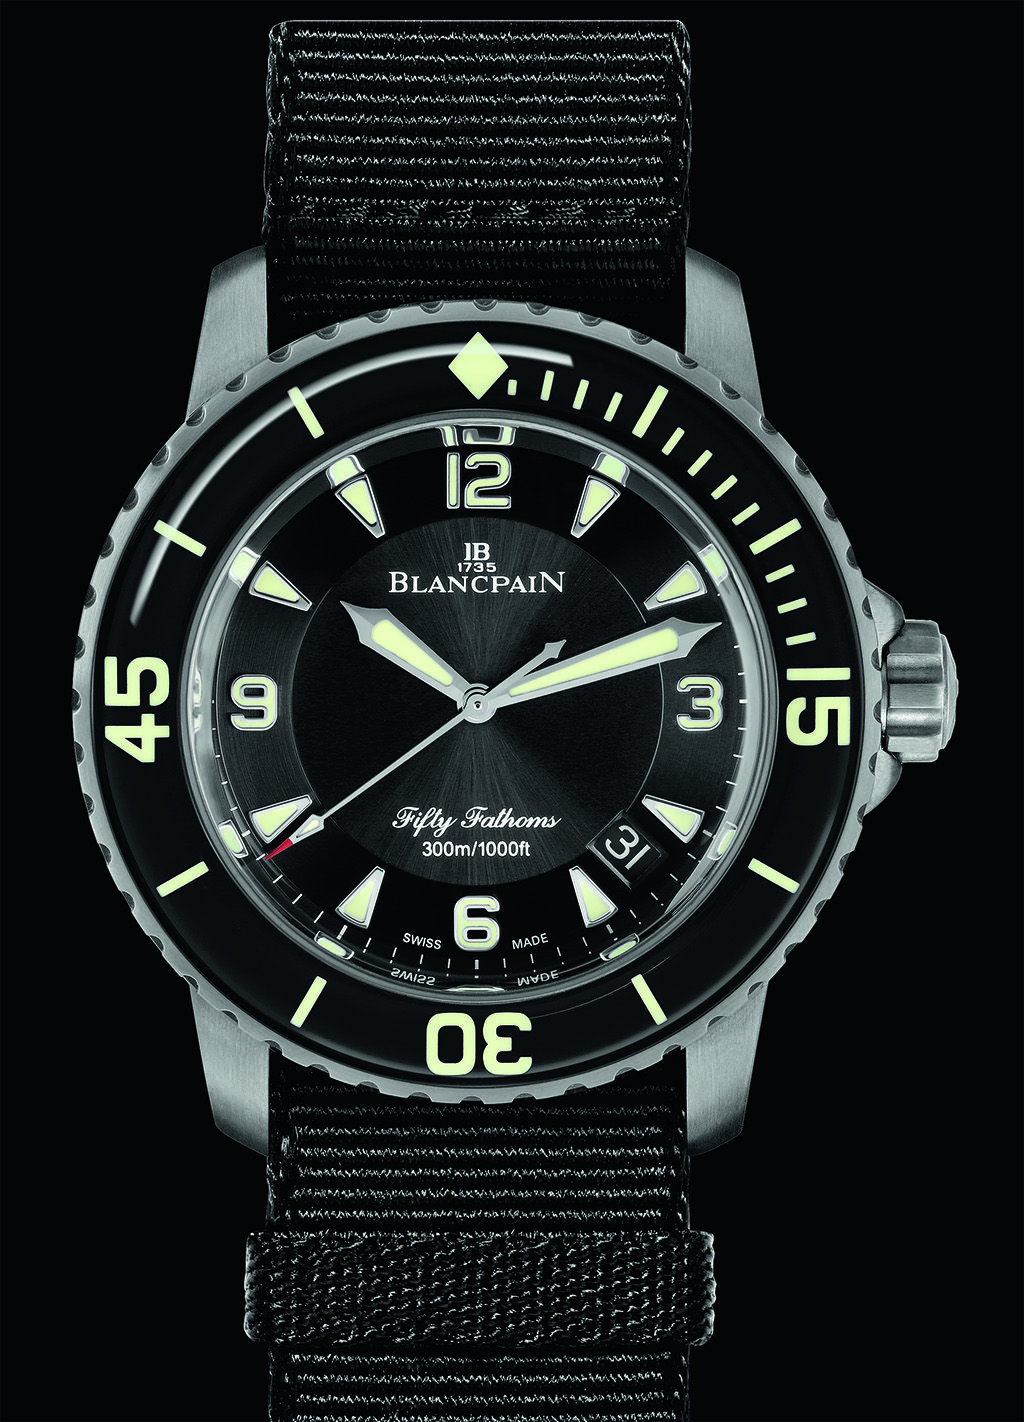 New Blancpain Fifty Fathoms In Titanium Blancpain Fifty Fathoms Swiss Luxury Watches